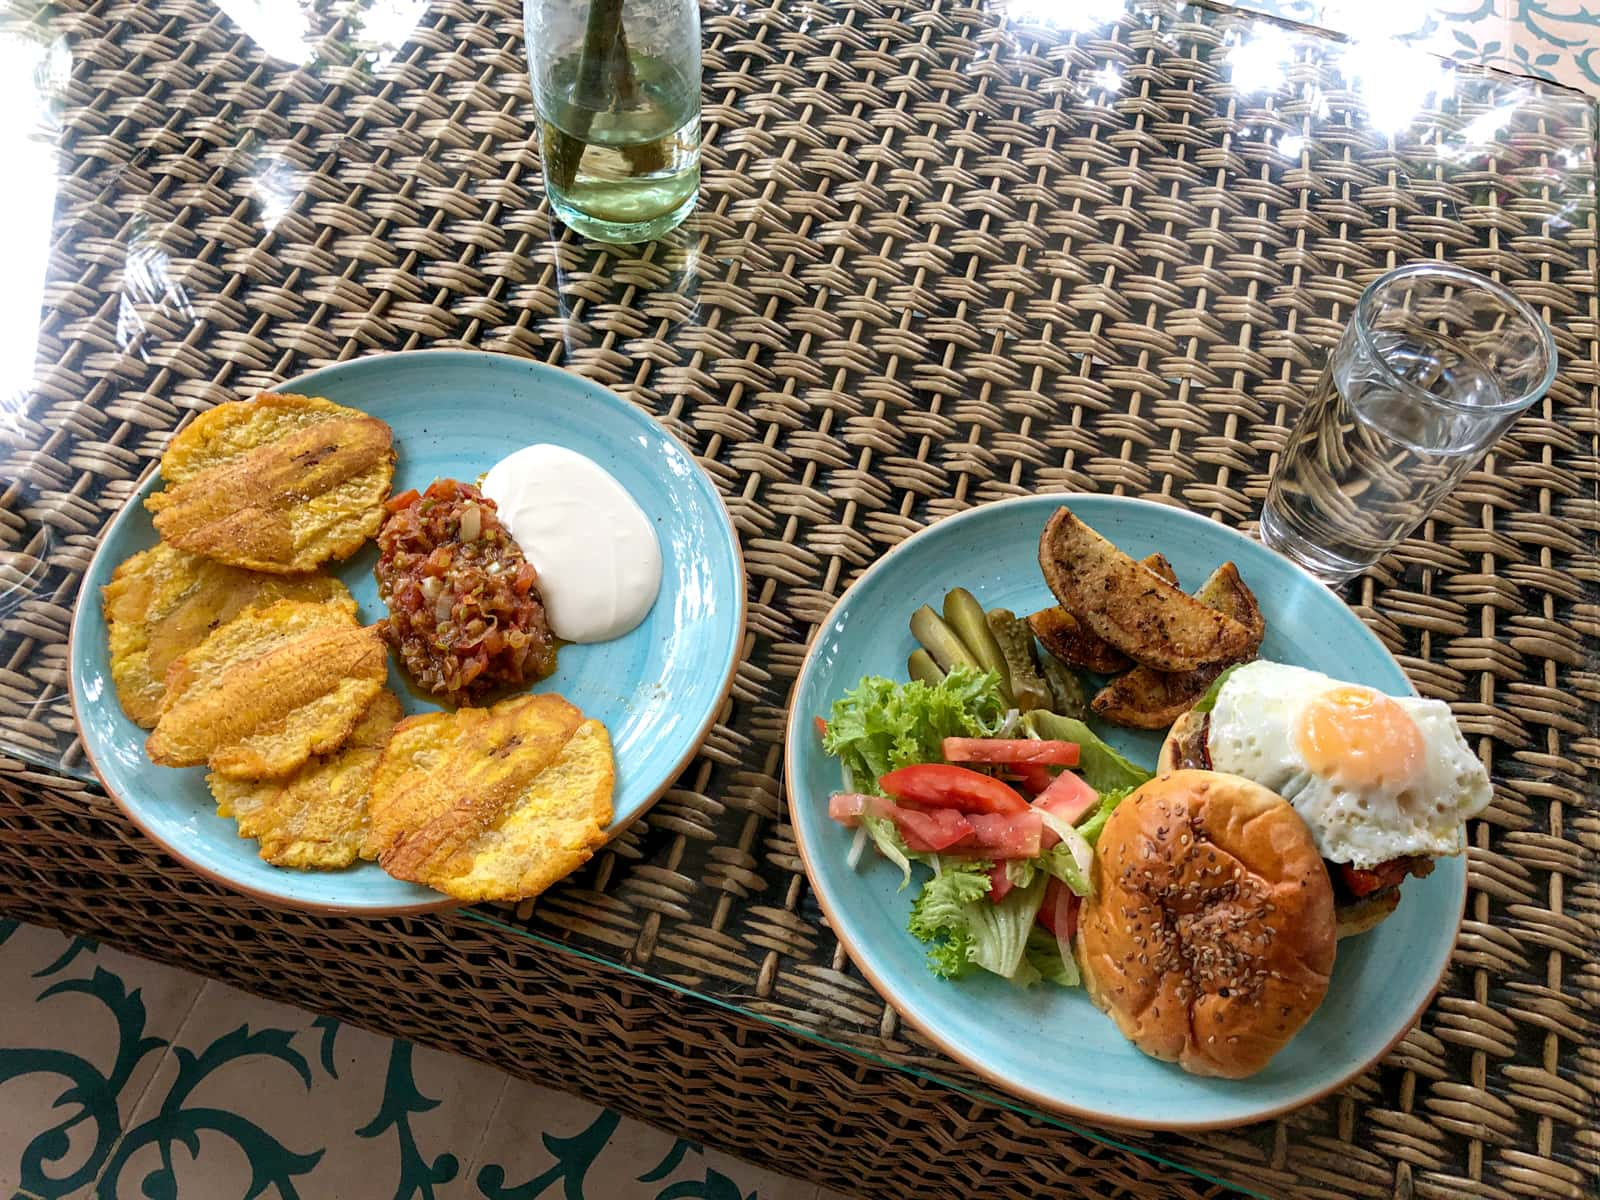 Patacones (fried plantains) and a burger